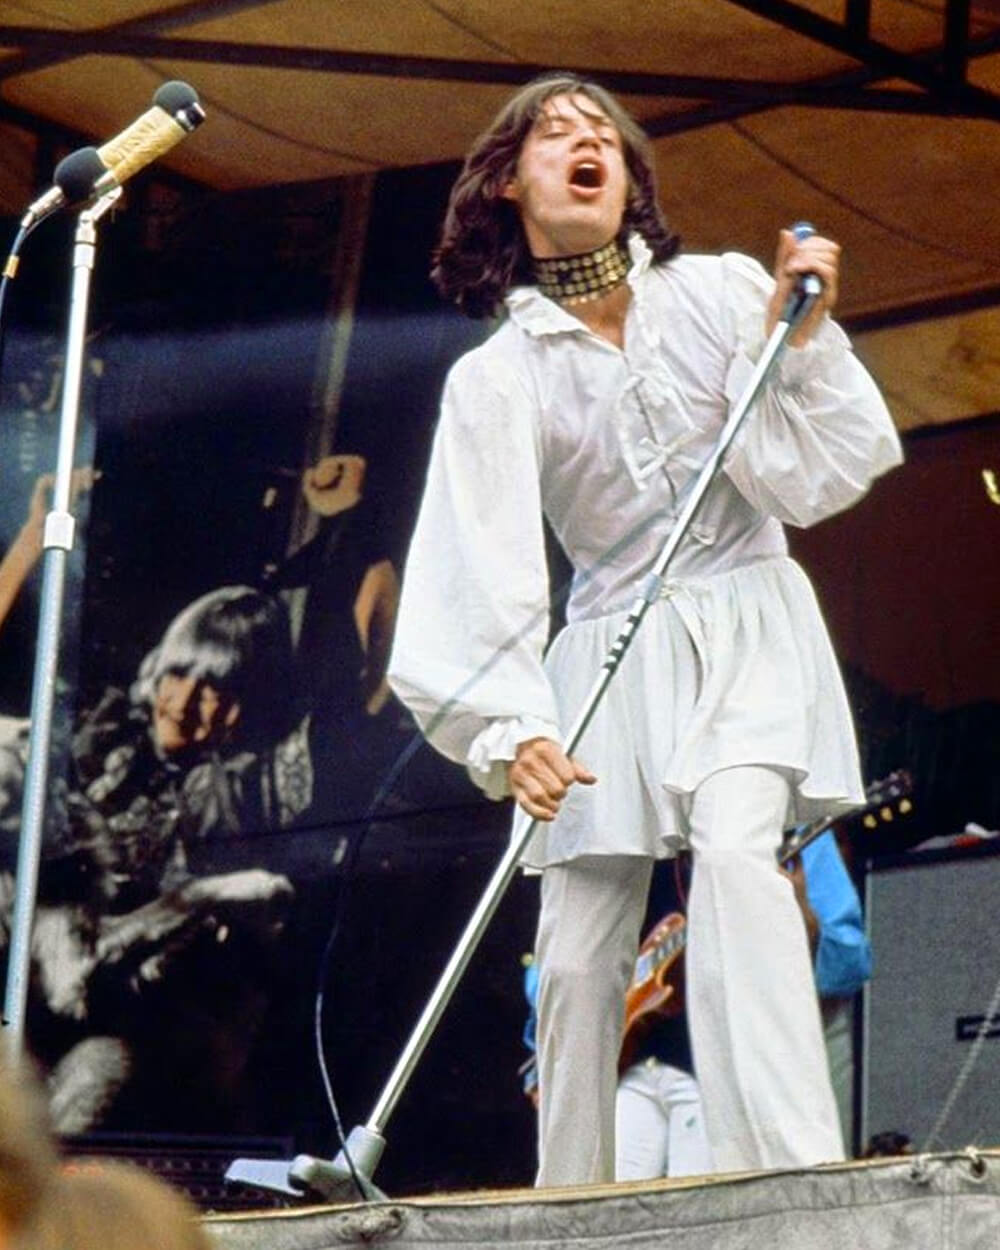 Mick Jagger 'man's dress' by Michael Fish London's Hyde Park in 1969